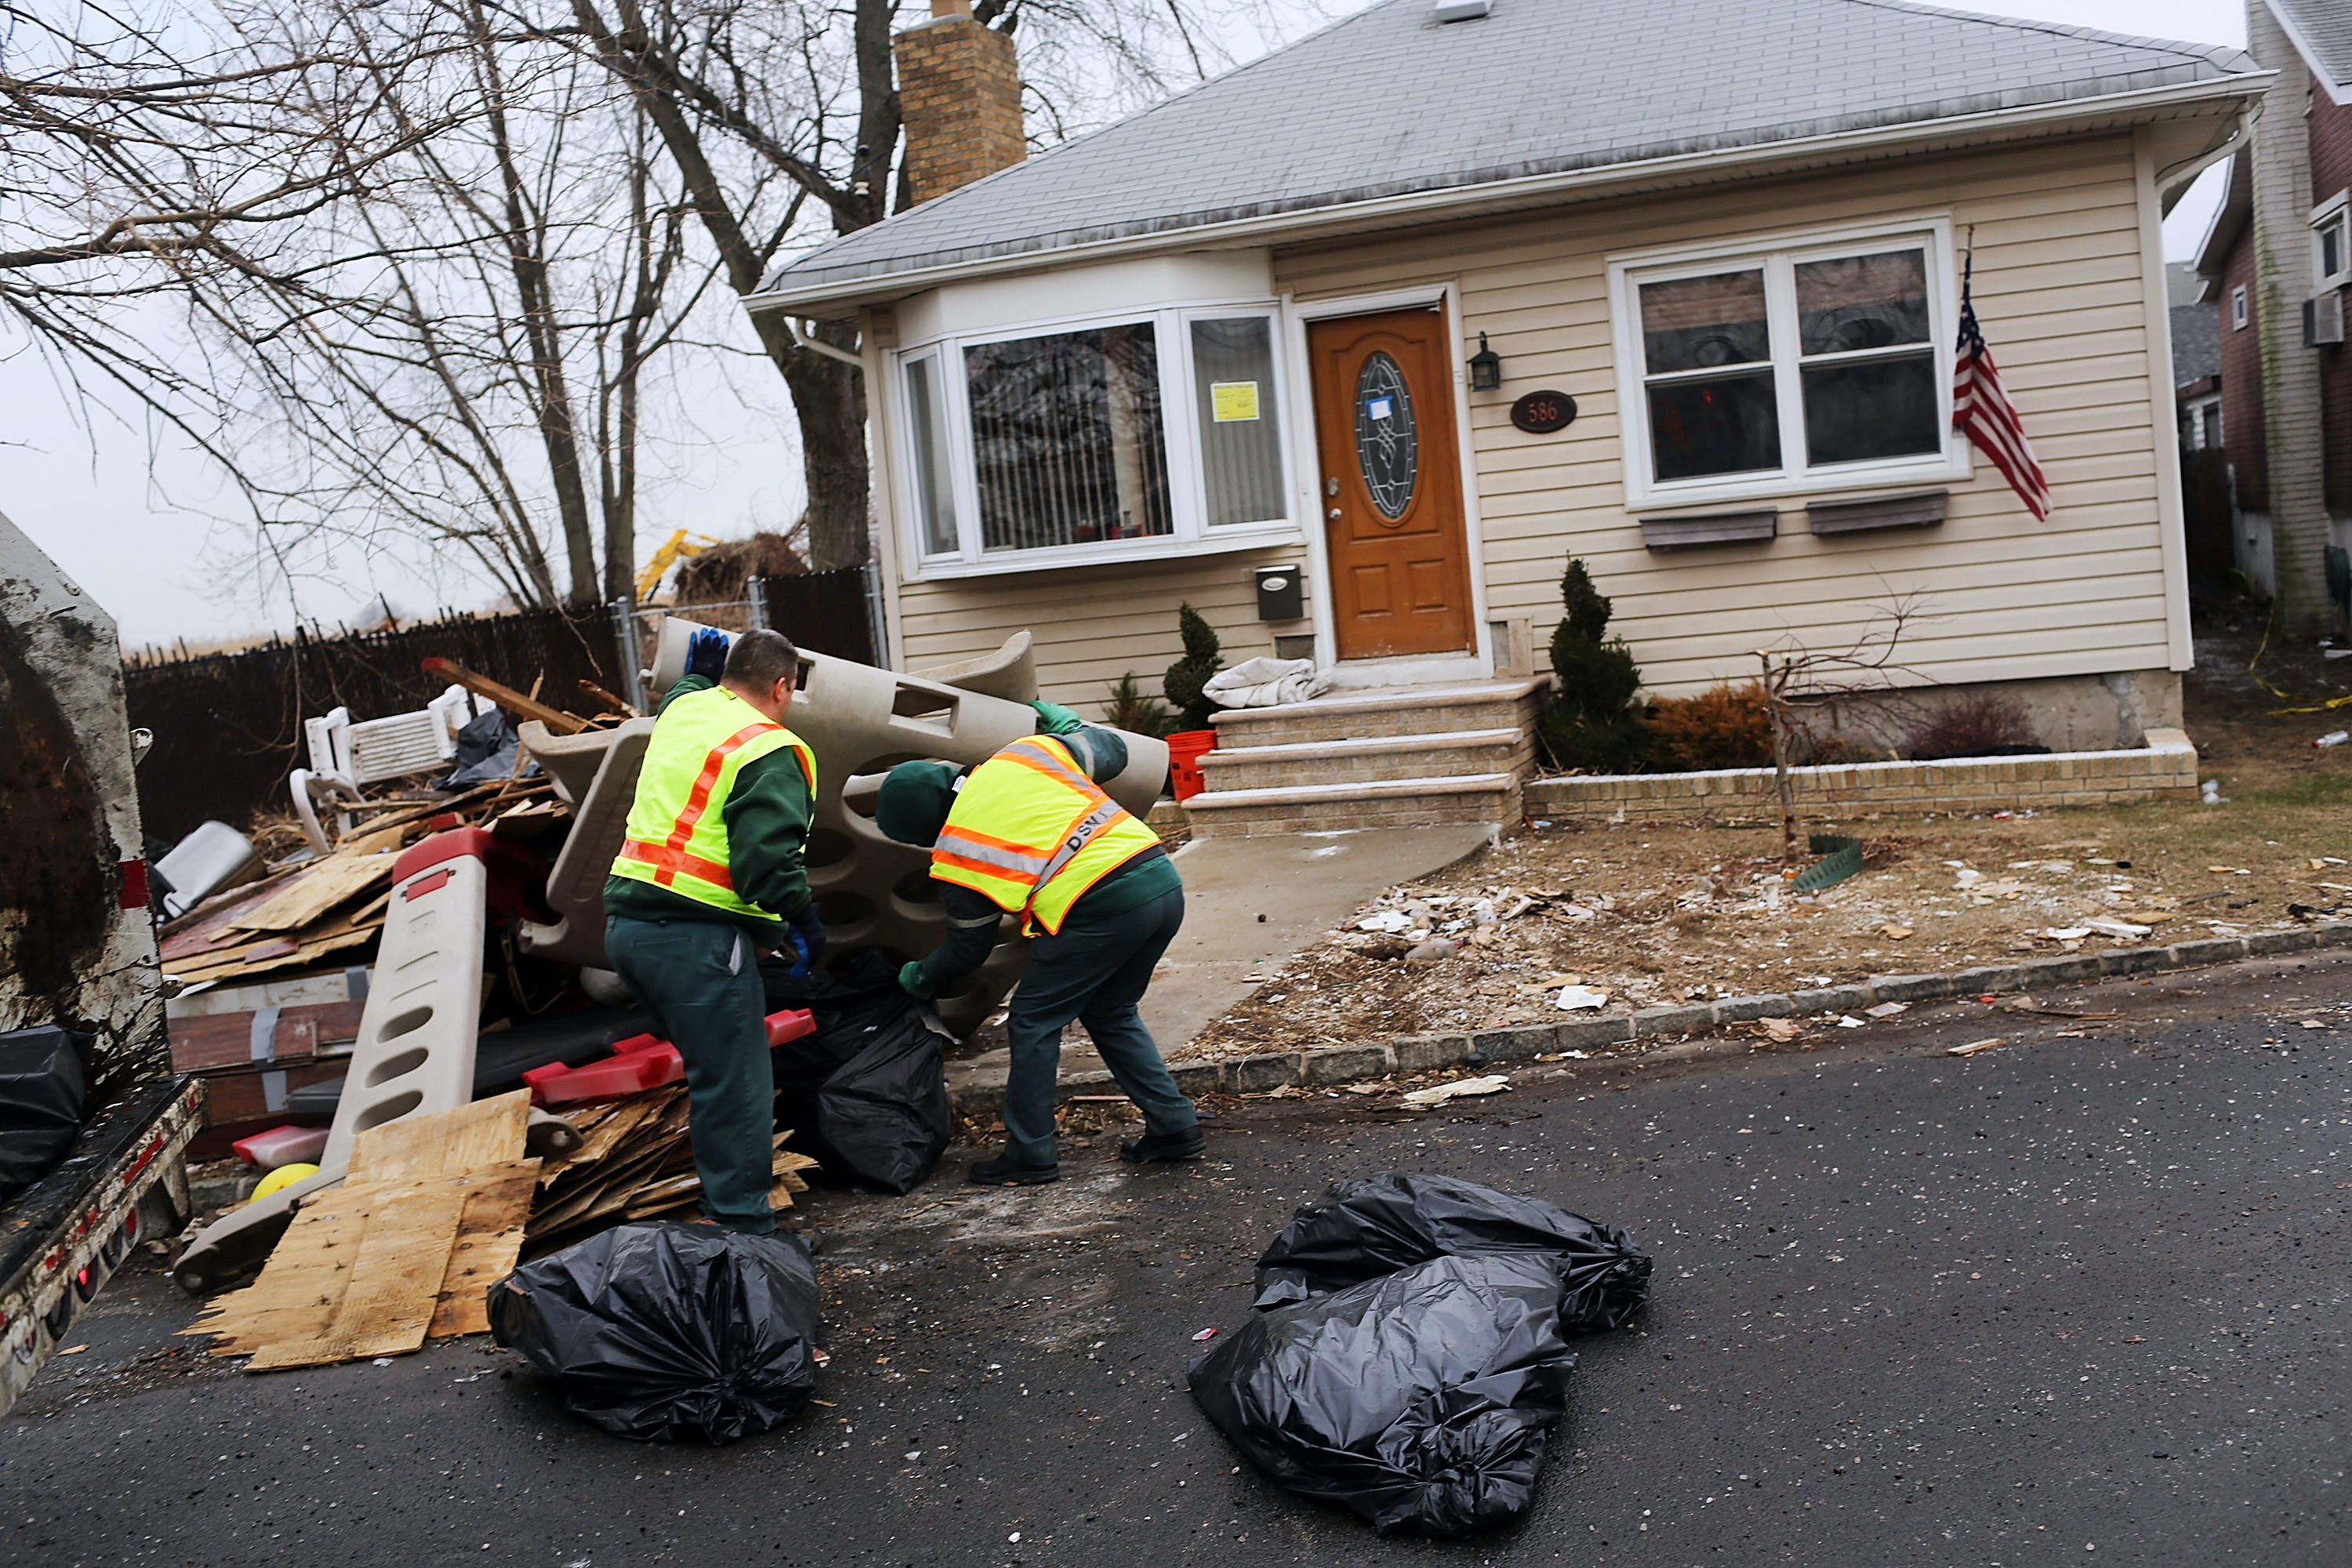 NEW YORK, NY - FEBRUARY 05:  Sanitation workers throw out debris from a flood damaged home in Oakwood Beach in Staten Island on February 5, 2013 in New York City. In a program proposed by New York Governor Andrew Cuomo, New York state could spend up to $400 million to buy out home owners whose properties were destroyed by Superstorm Sandy. The $50.5 billion disaster relief package, which was passed by Congress last month, would be used to fund the program. If the program is adopted, homeowners would be relocated and their land would be left as a natural barrier to help absorb future floods waters.  (Photo by Spencer Platt/Getty Images)